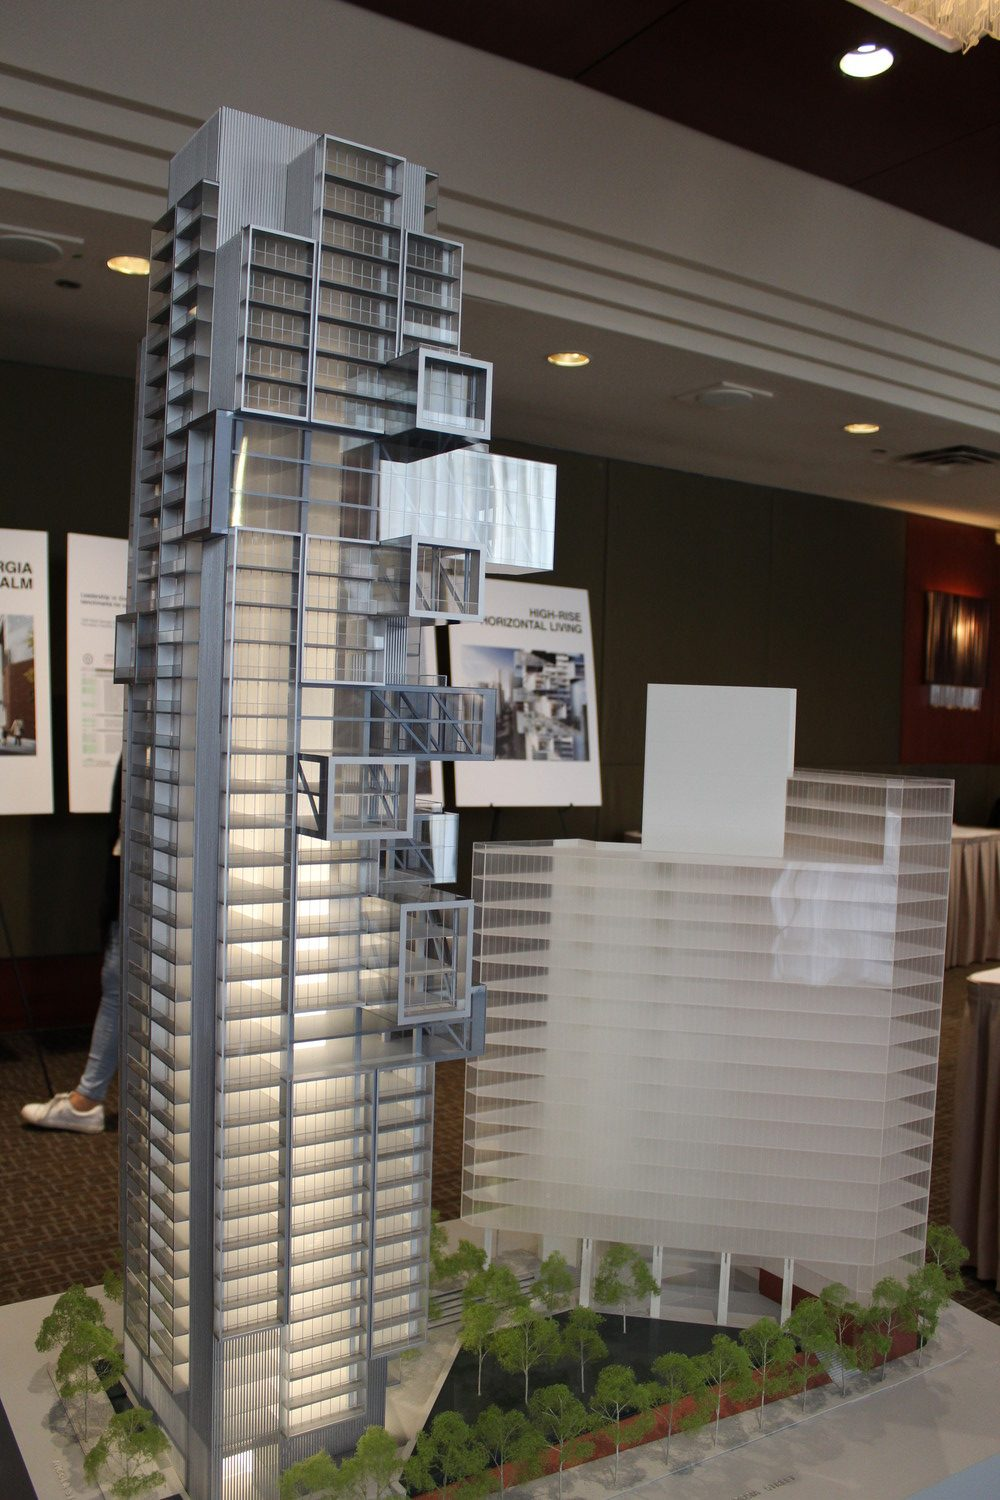 Bosa tower 1515 Alberni Street model